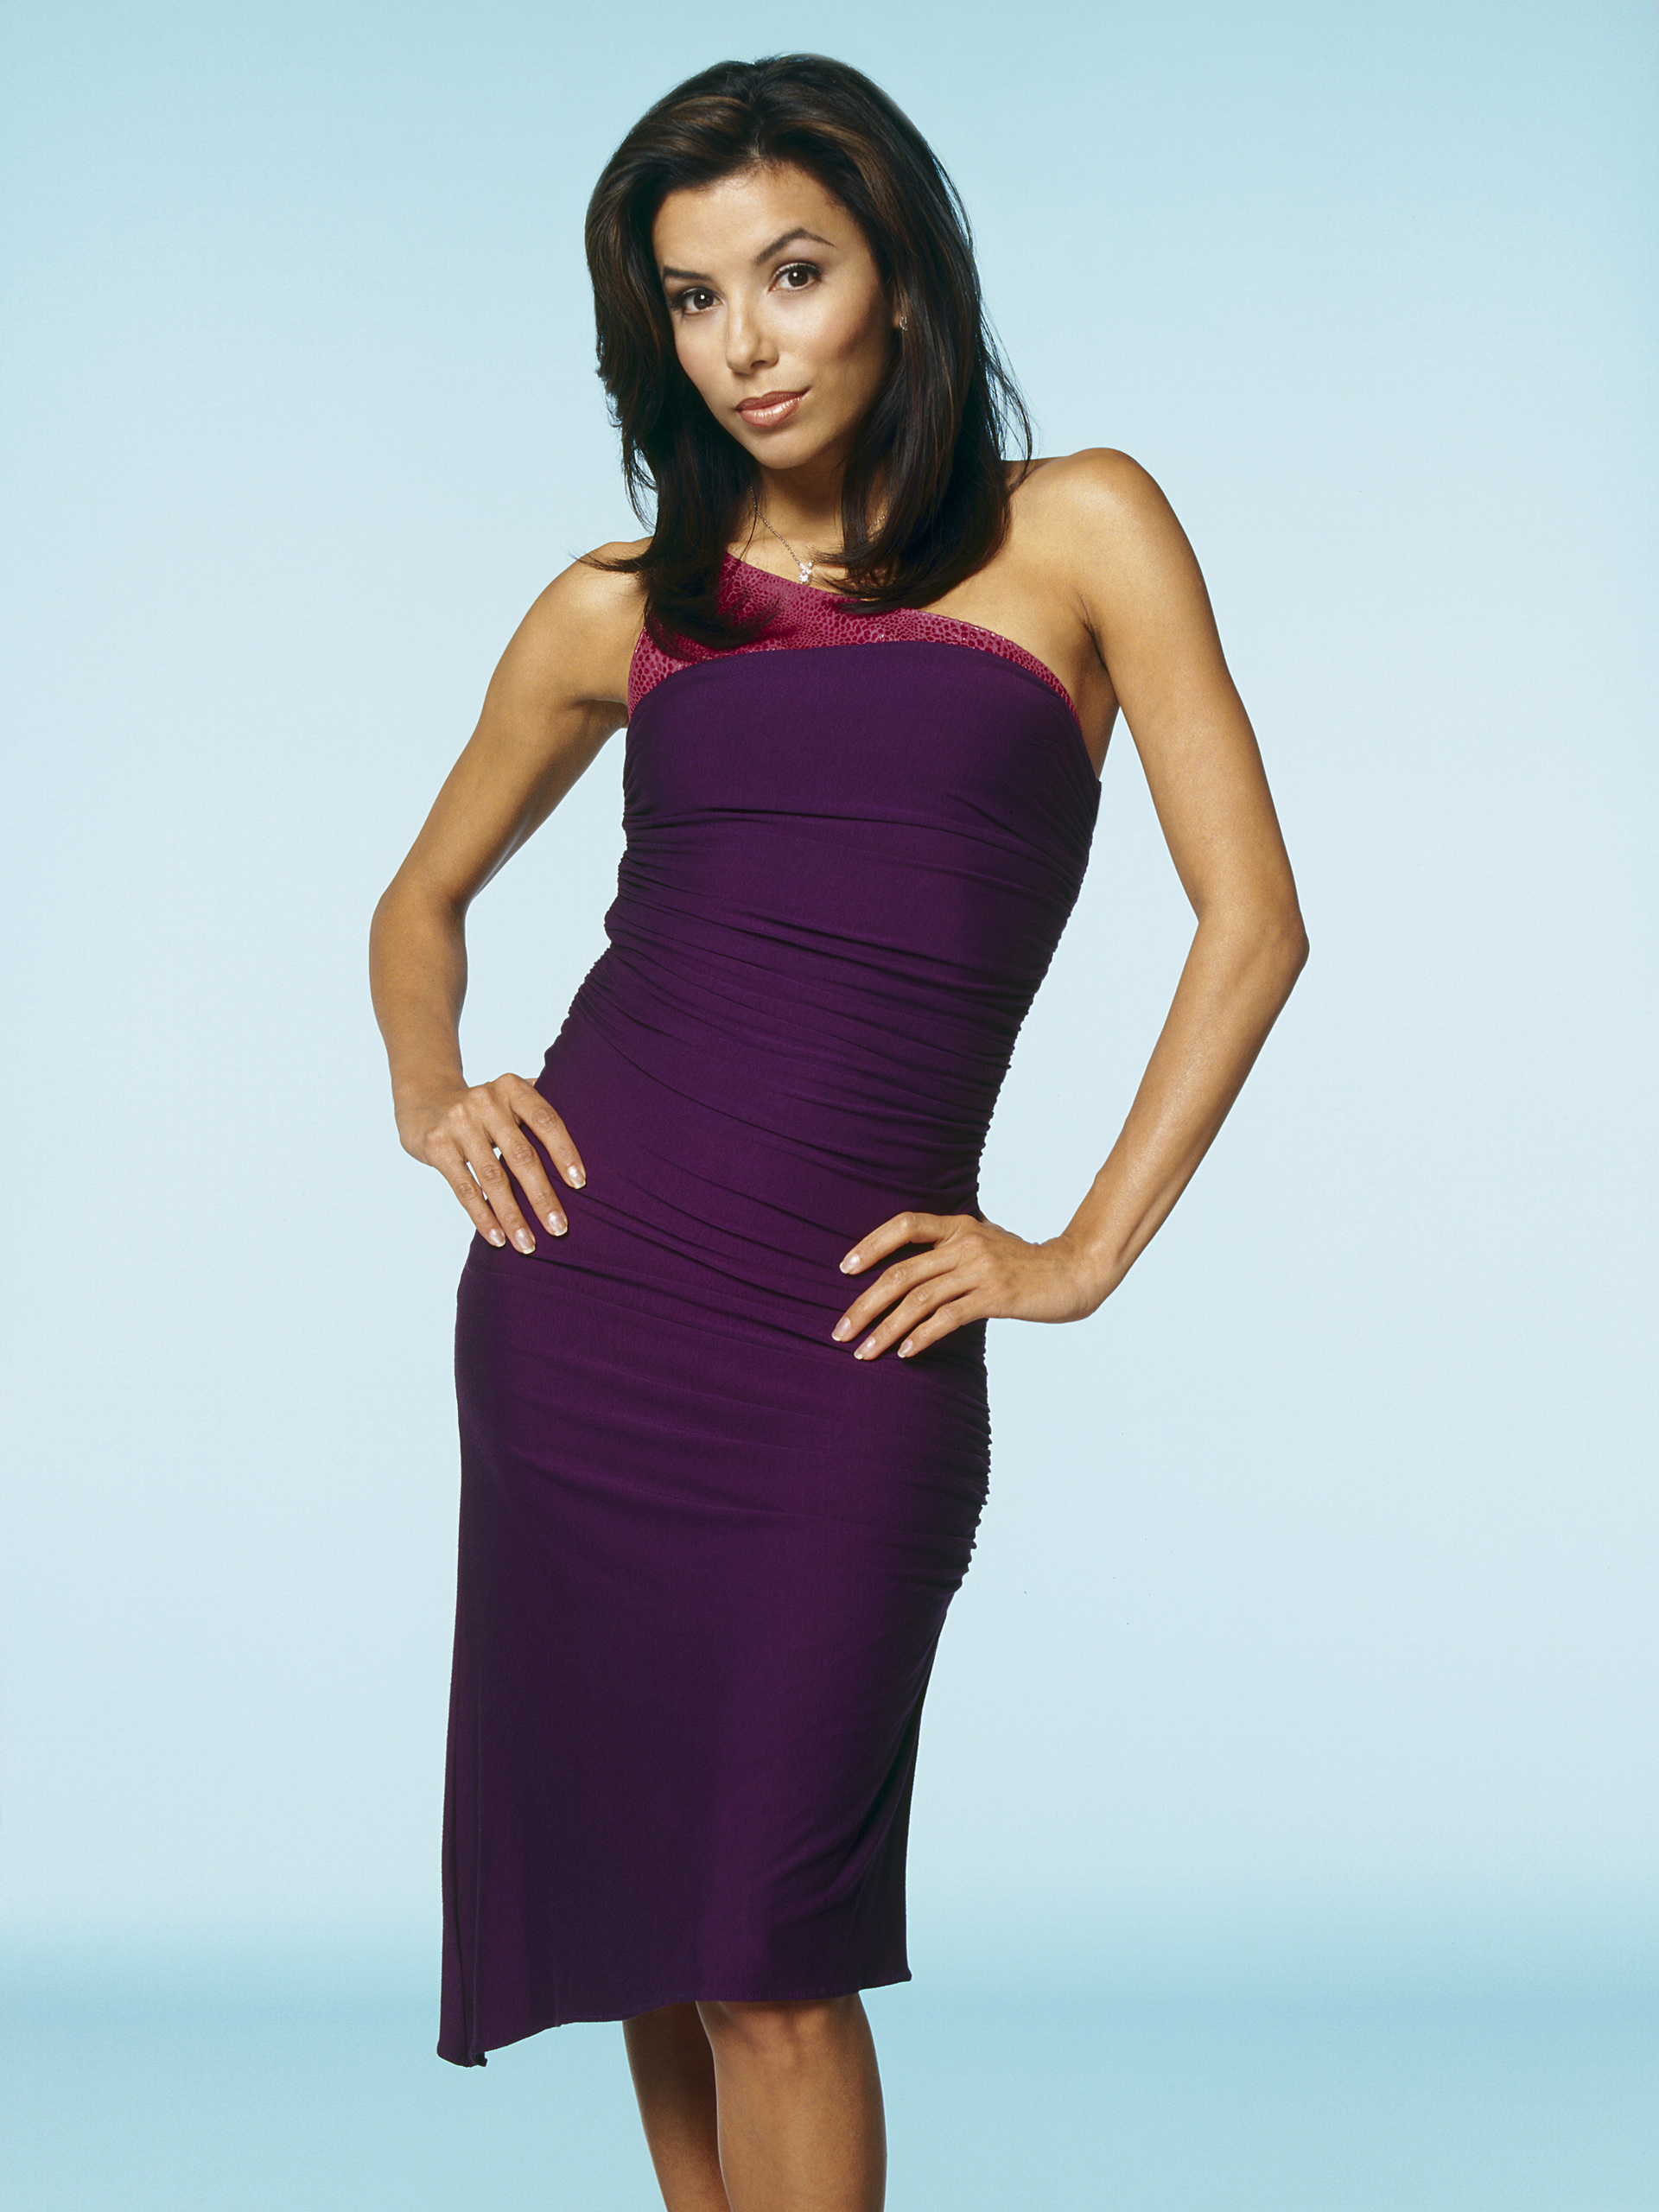 http://images2.fanpop.com/images/photos/6000000/Desperate-Housewives-desperate-housewives-6026855-1920-2560.jpg